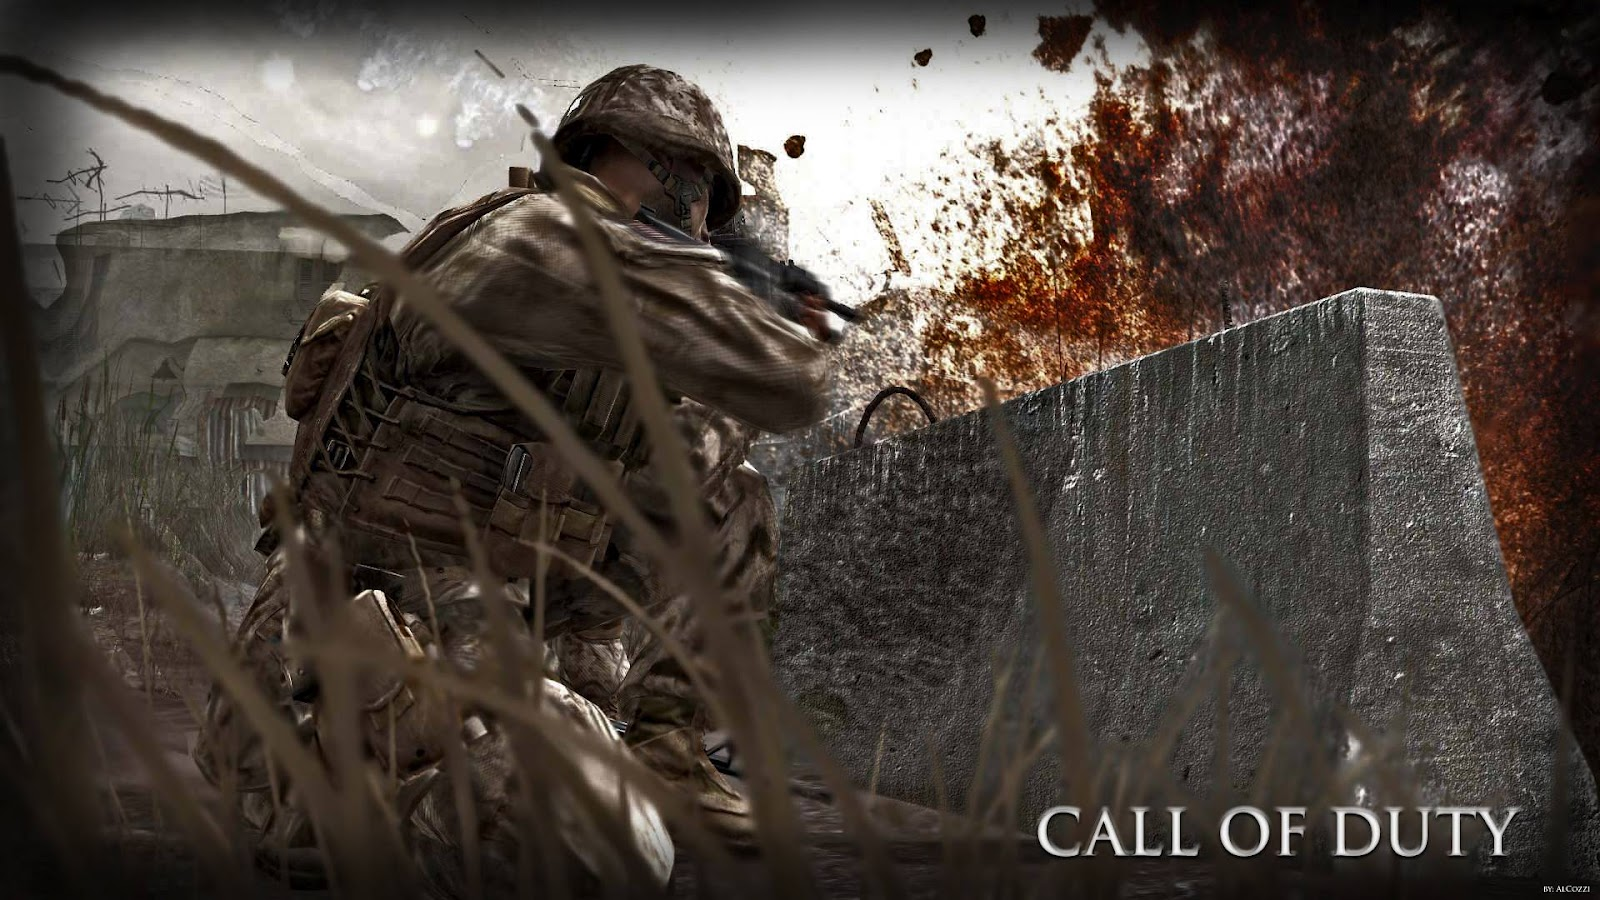 http://2.bp.blogspot.com/-Ky7iTJkb-wc/UBXPjWovKrI/AAAAAAAAFiU/d7AehqWWQU8/s1600/Call+of+Duty+4+Modern+Warfare+Wallpapers+1.jpg